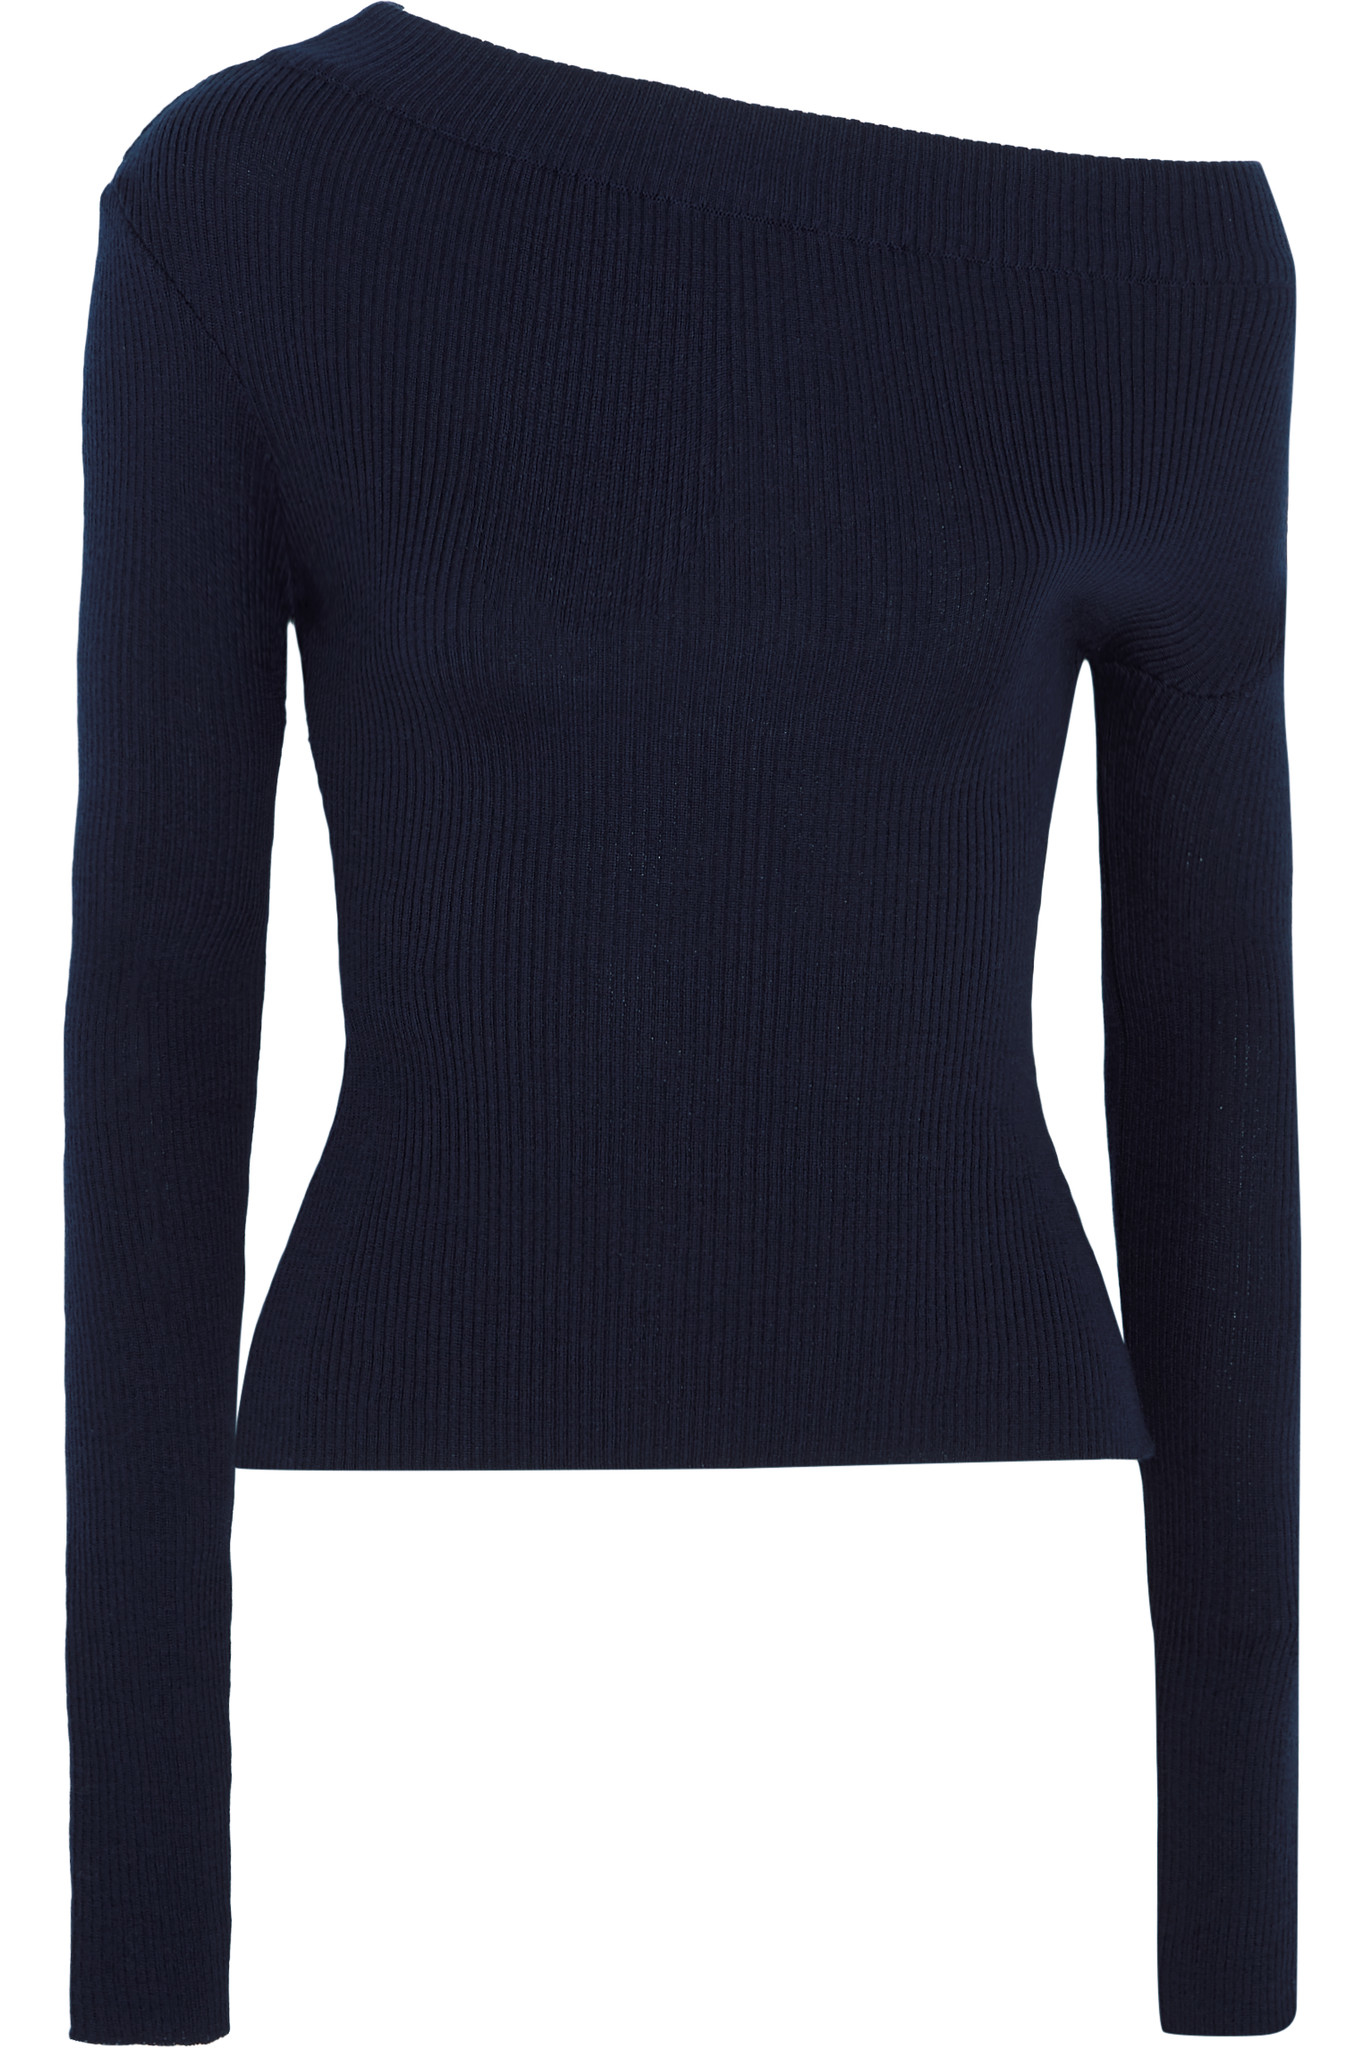 b93becc159d73 Lyst - Jacquemus One-shoulder Ribbed Wool Sweater in Blue